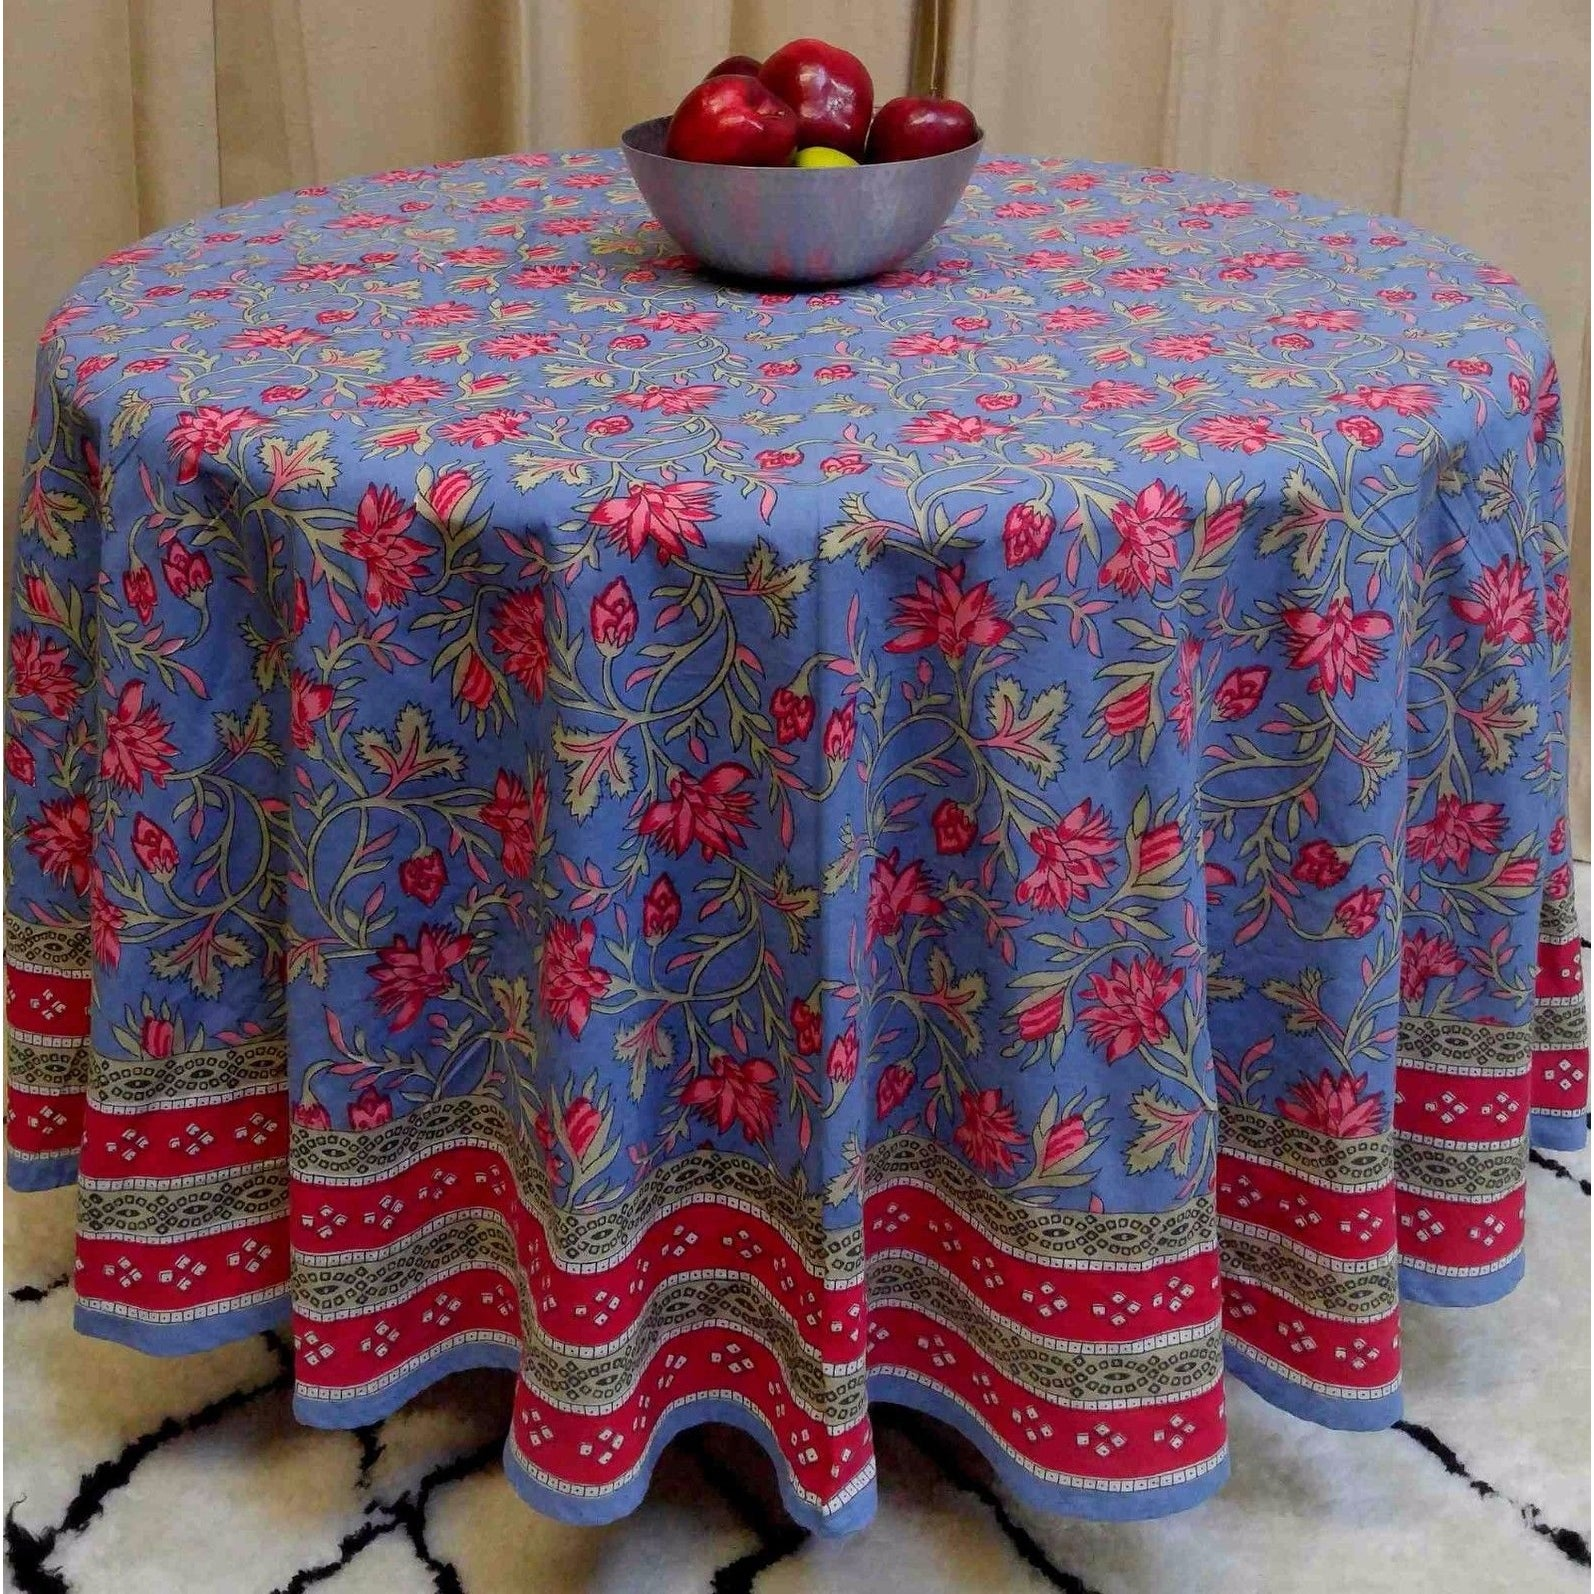 "Handmade 100% Cotton Floral Tablecloth 90"" Round Blue Red Pink - Thumbnail 0"